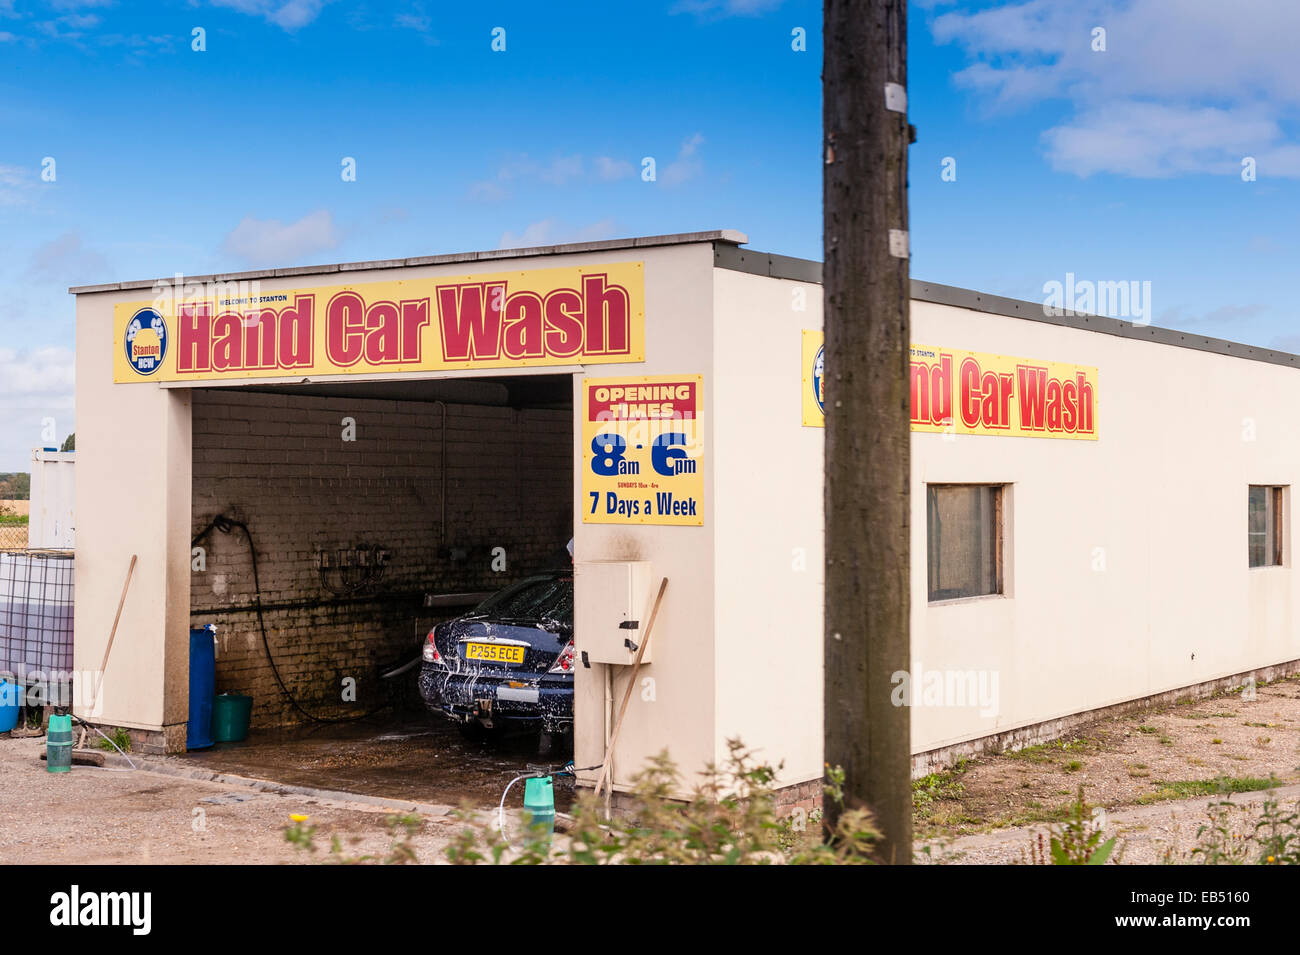 A hand car wash at the side of the road in the Uk - Stock Image